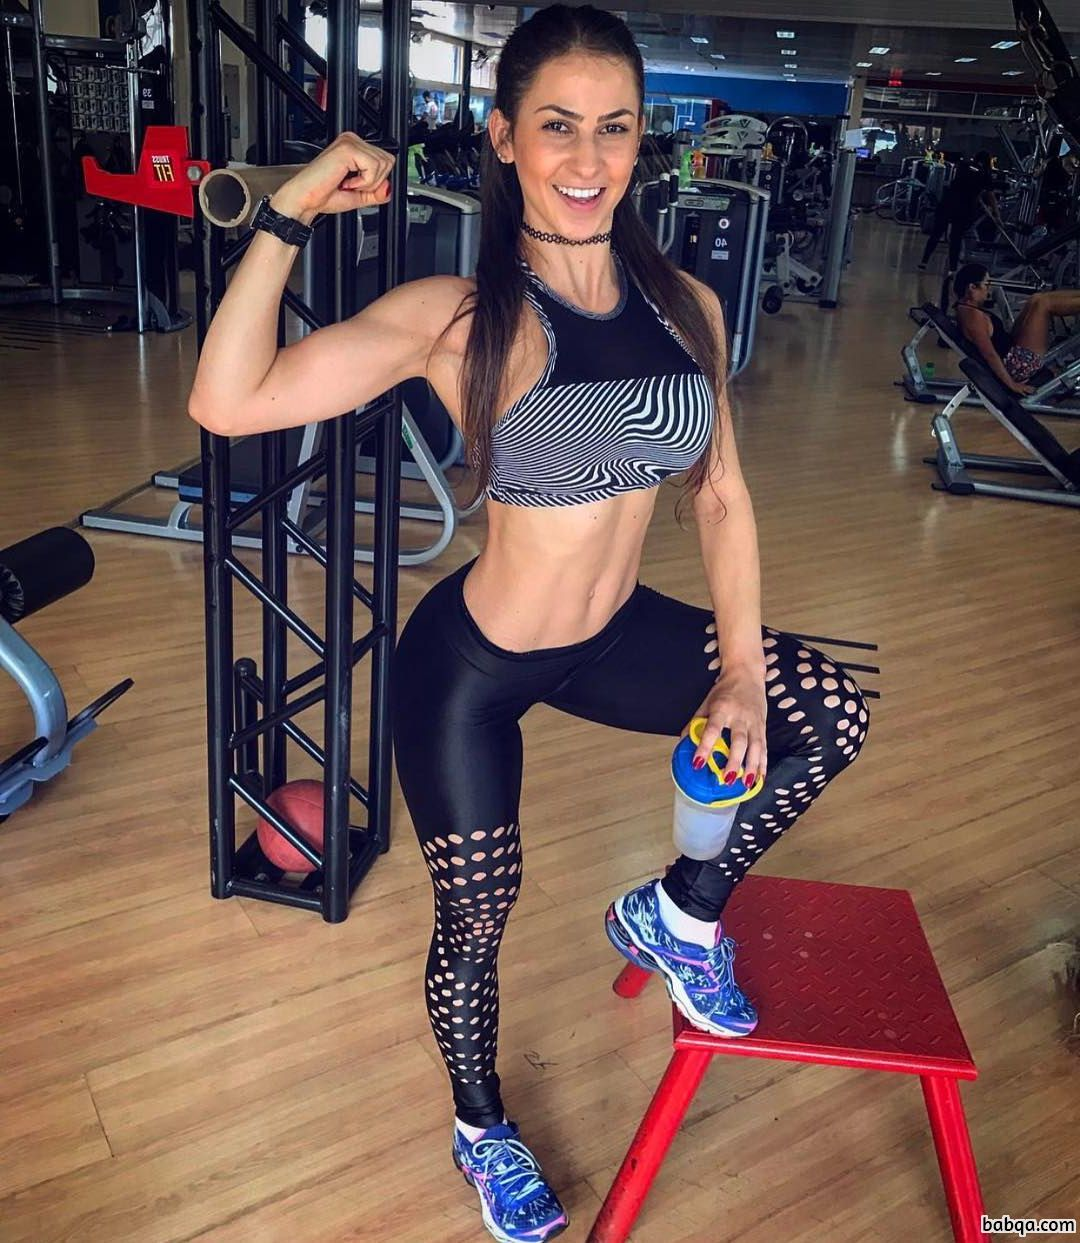 hottest lady with fitness body and muscle legs post from linkedin